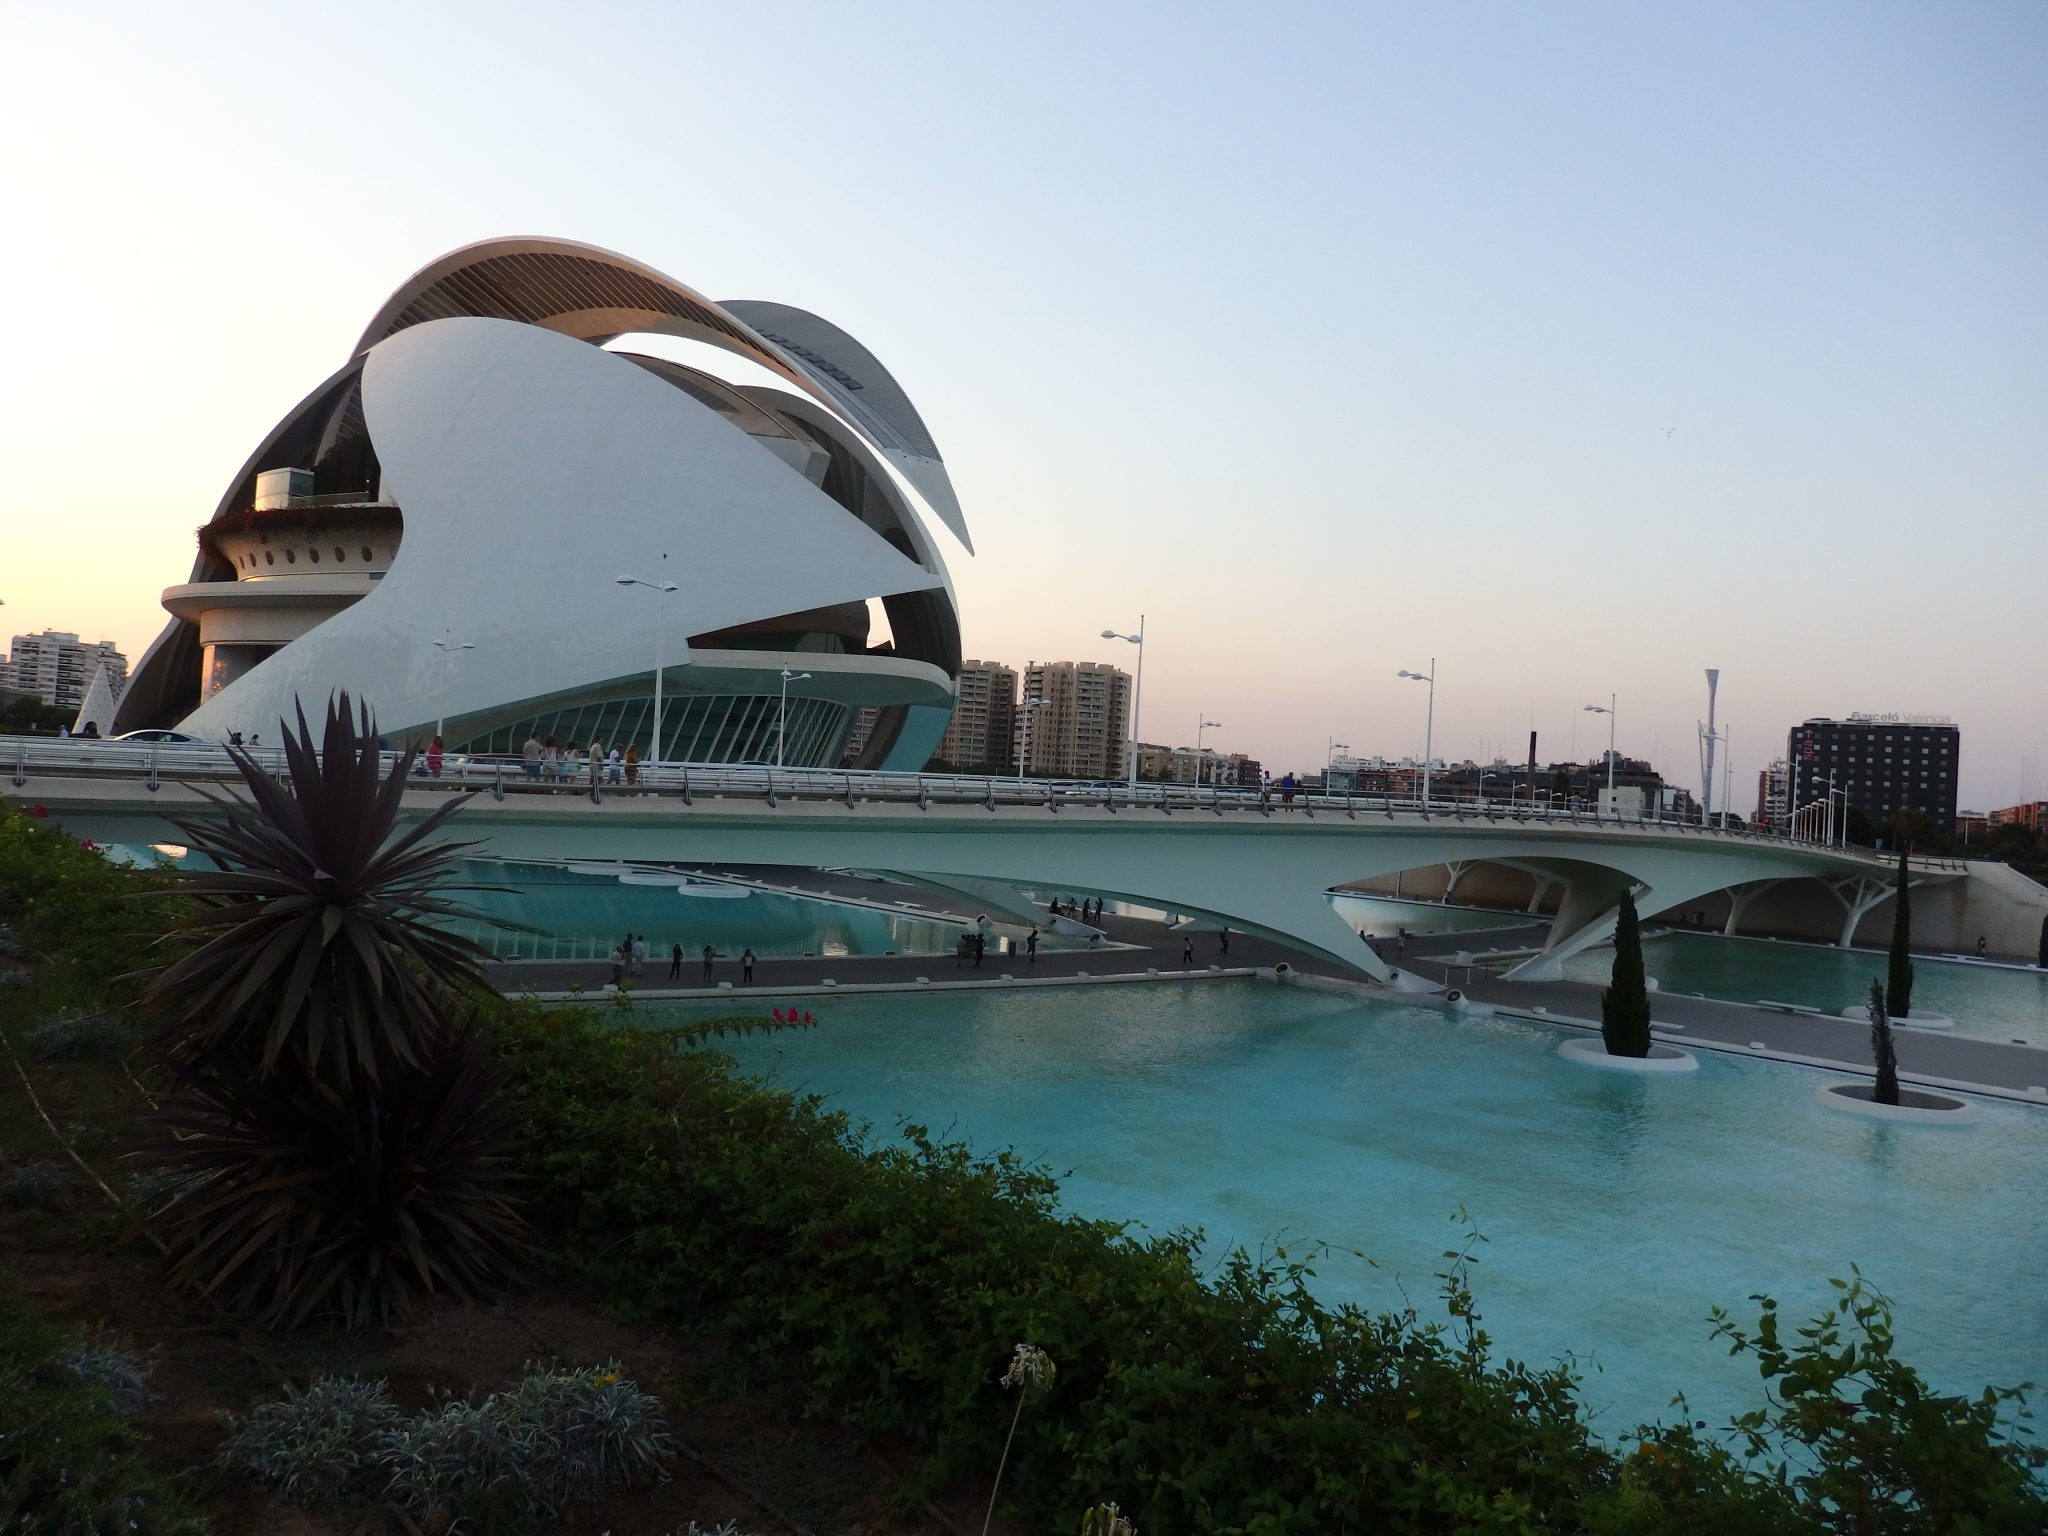 one of the buildings of the City of Arts and Sciences in Valencia, seen in passing from the car